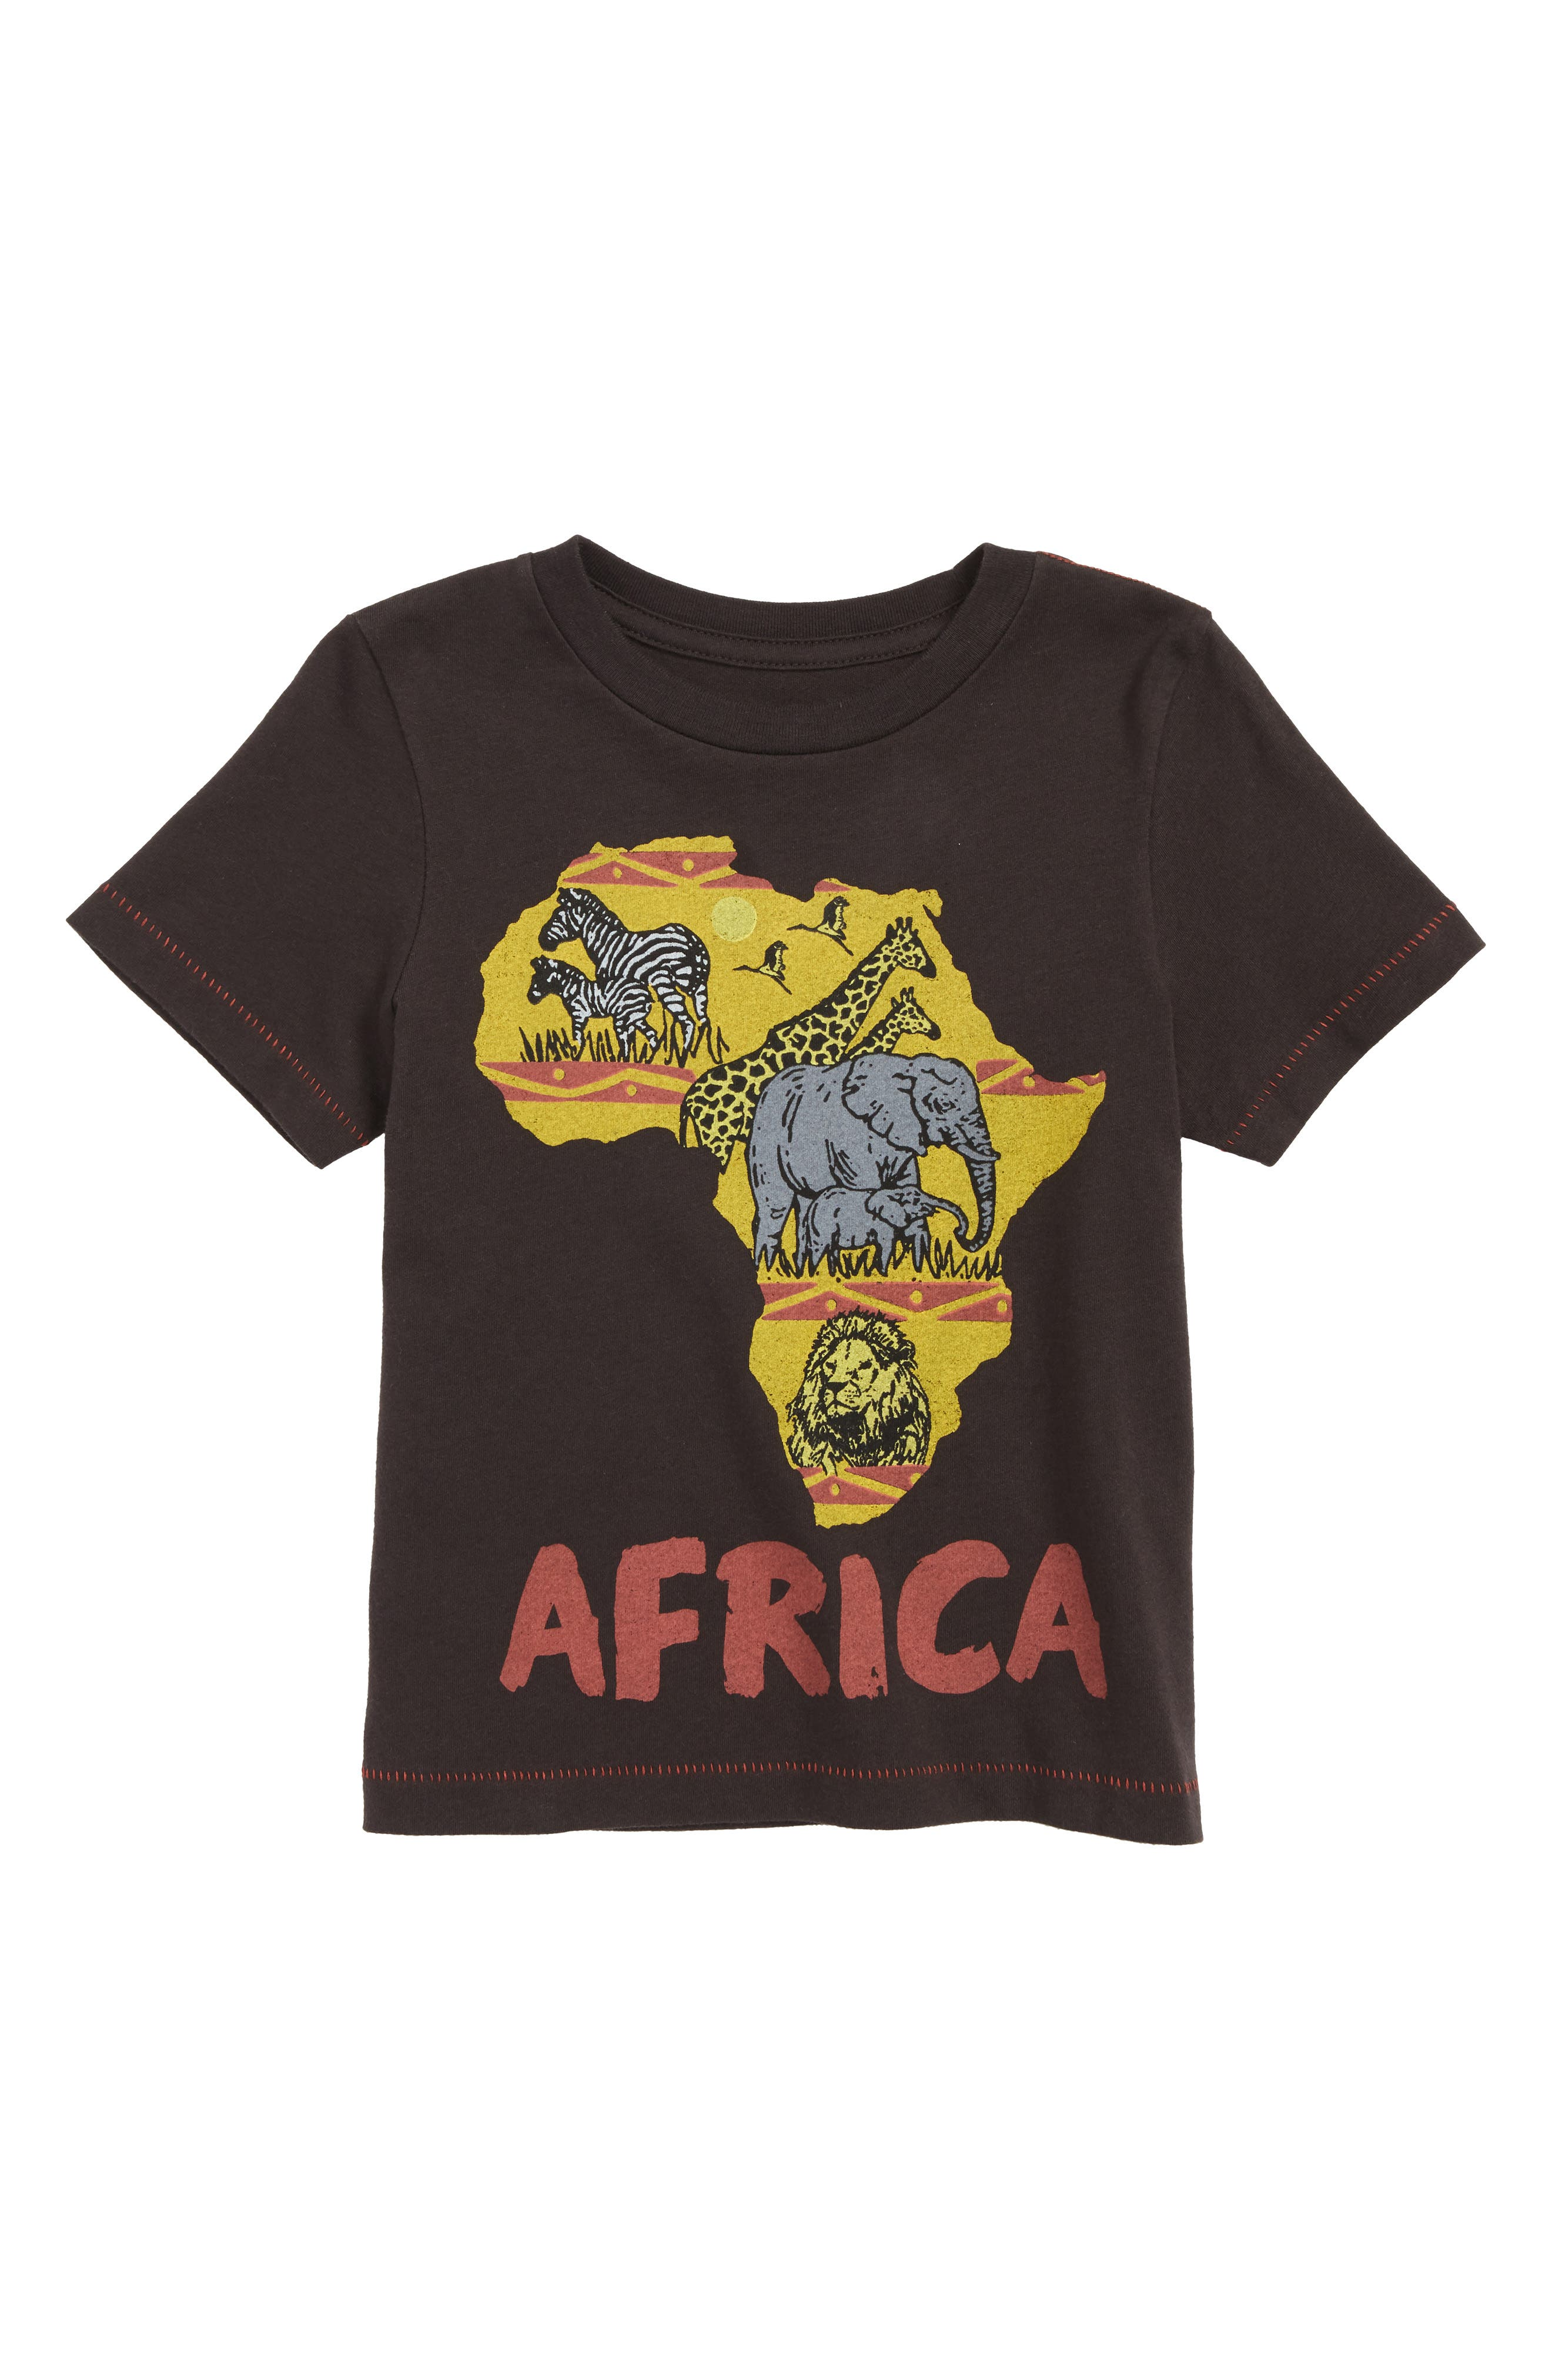 Africa Graphic T-Shirt,                             Main thumbnail 1, color,                             Black